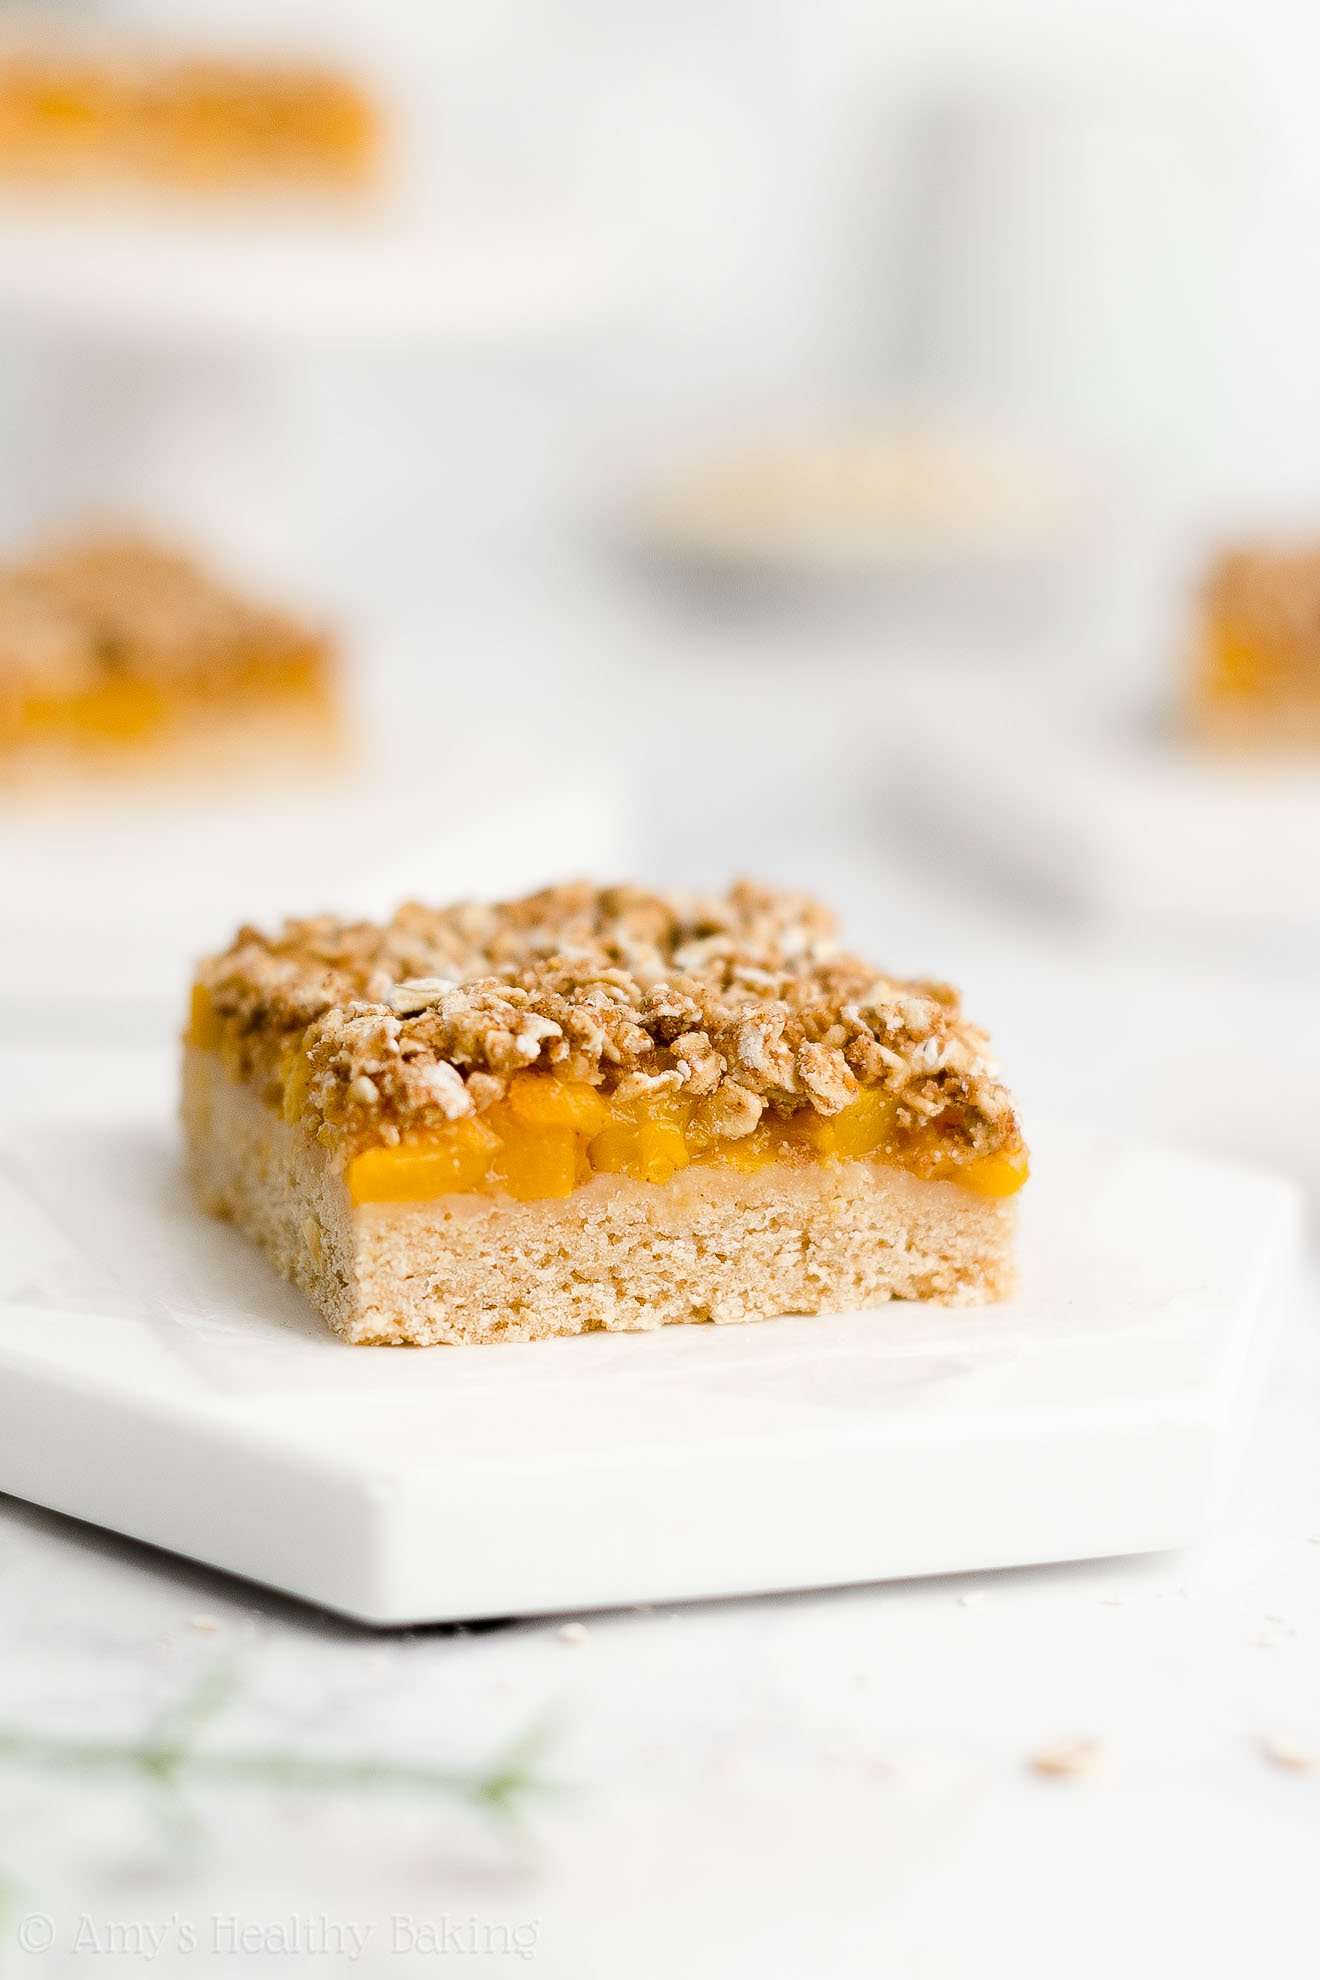 Best Easy Healthy Whole Wheat Low Calorie Canned Peach Oat Crumble Bars